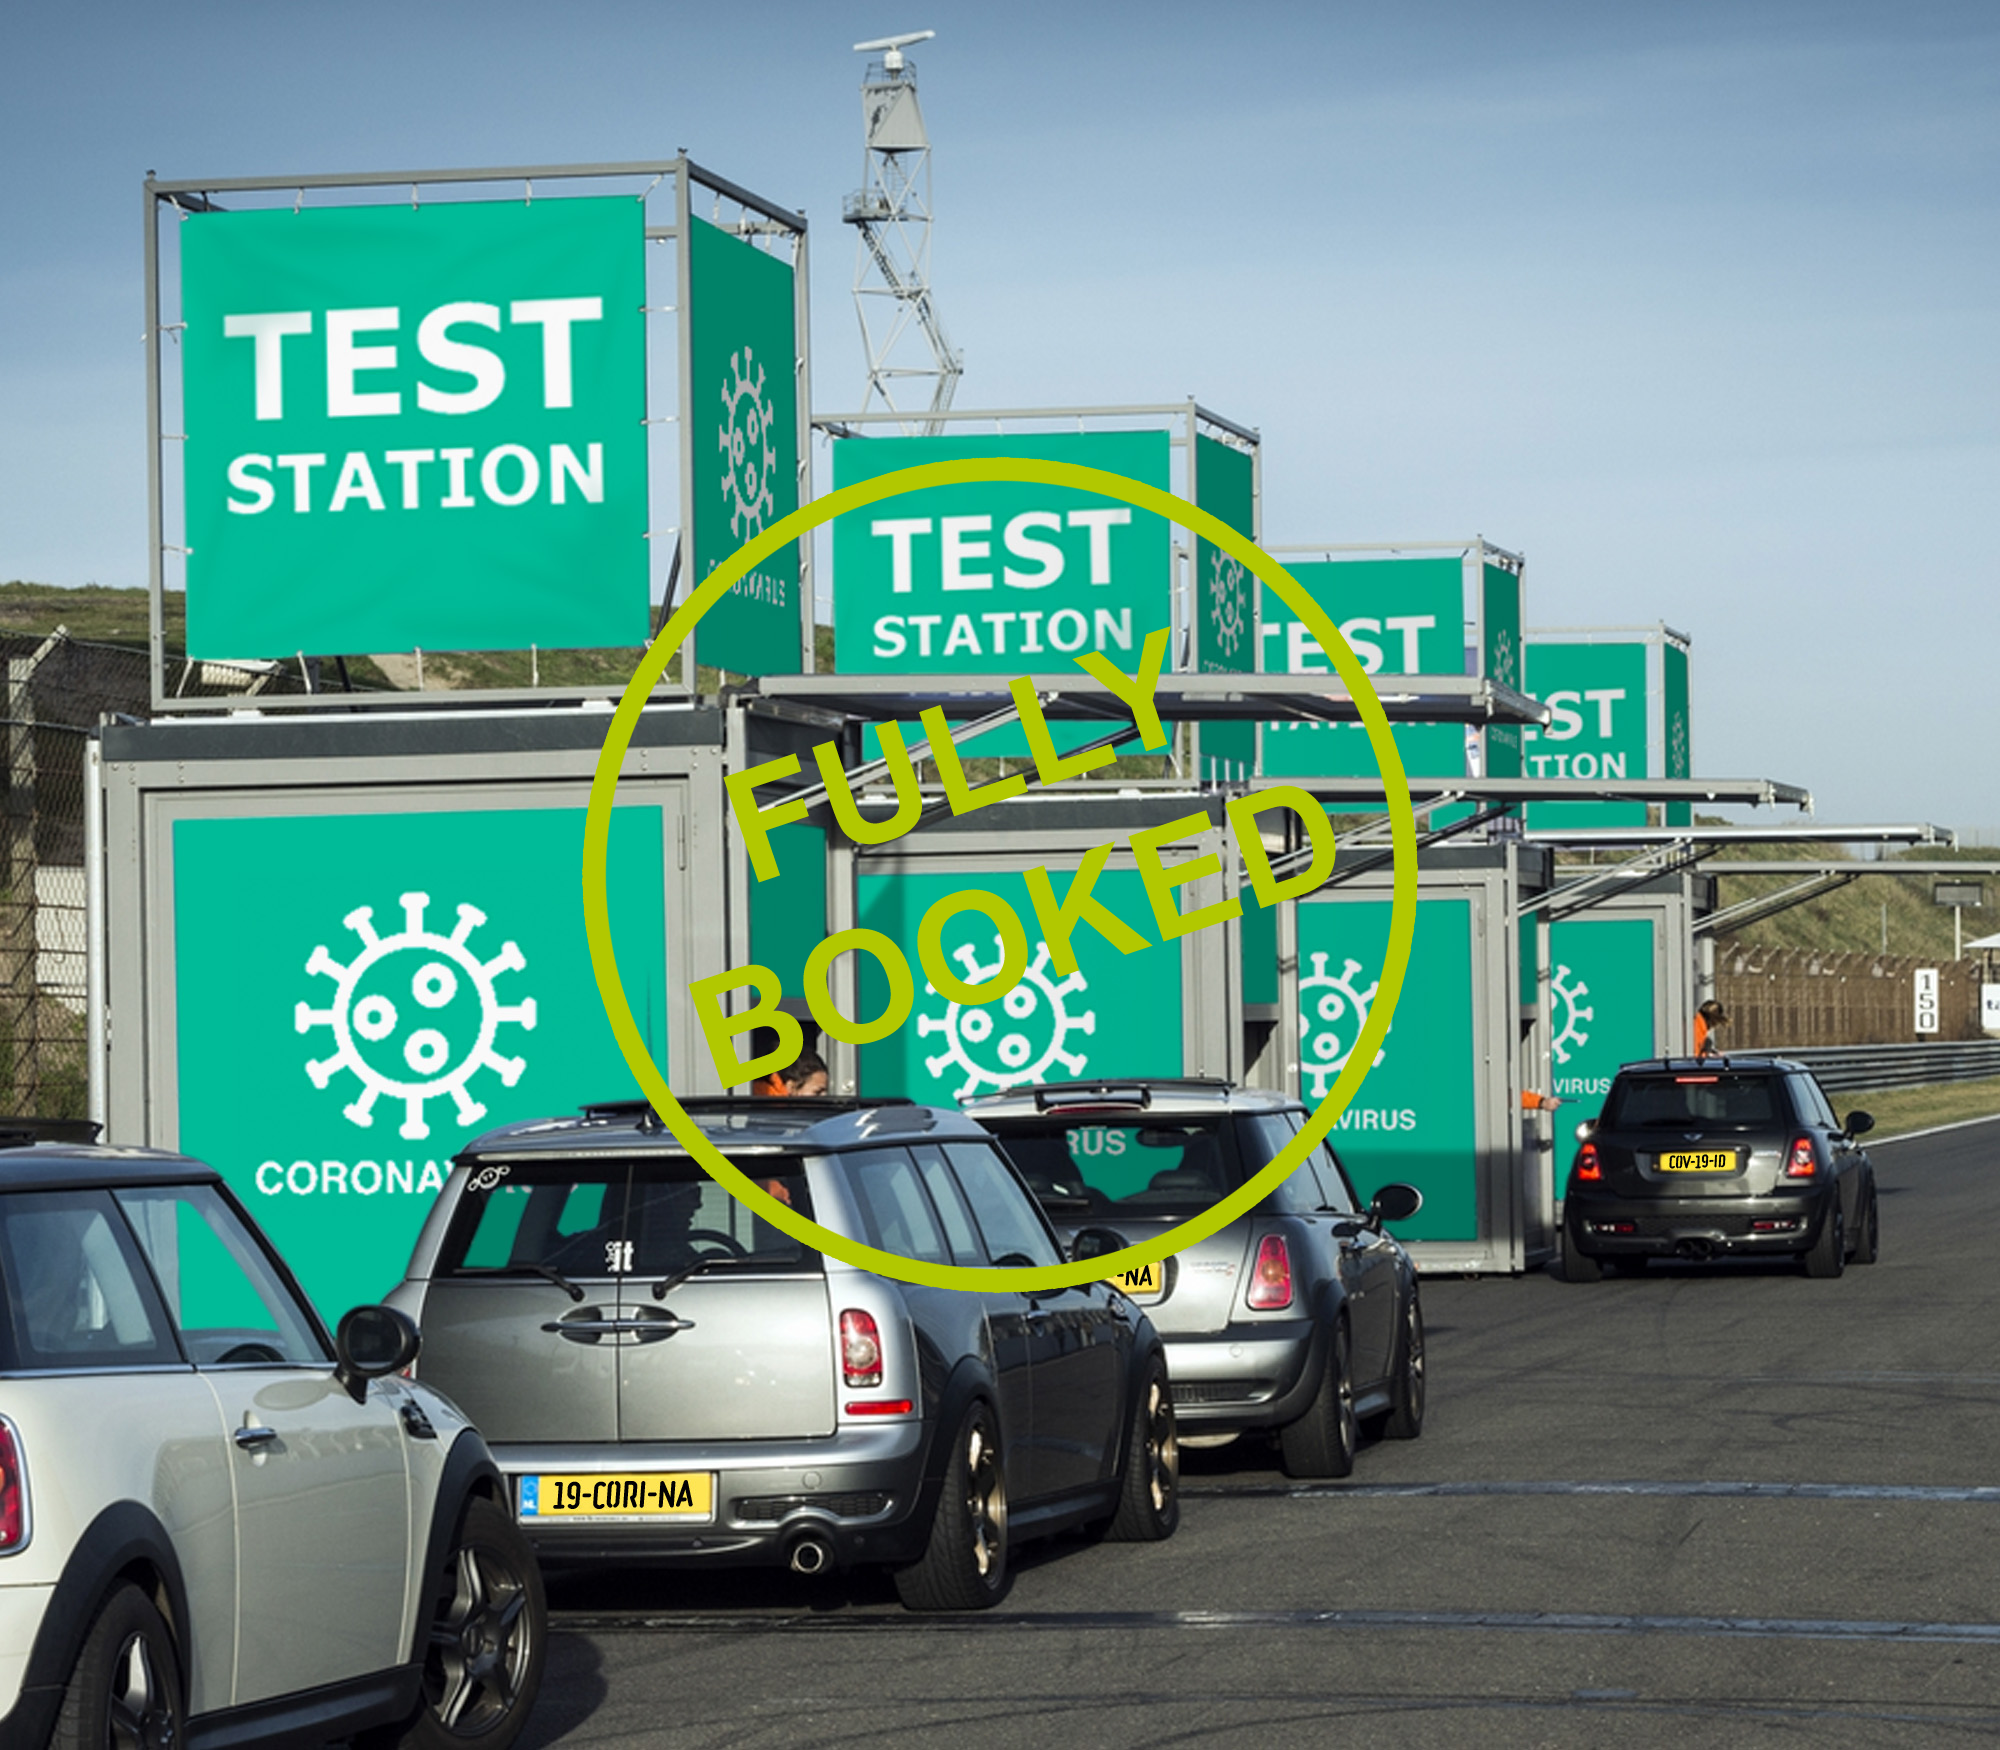 Covid19-Test-Station_Fully-Booked_4